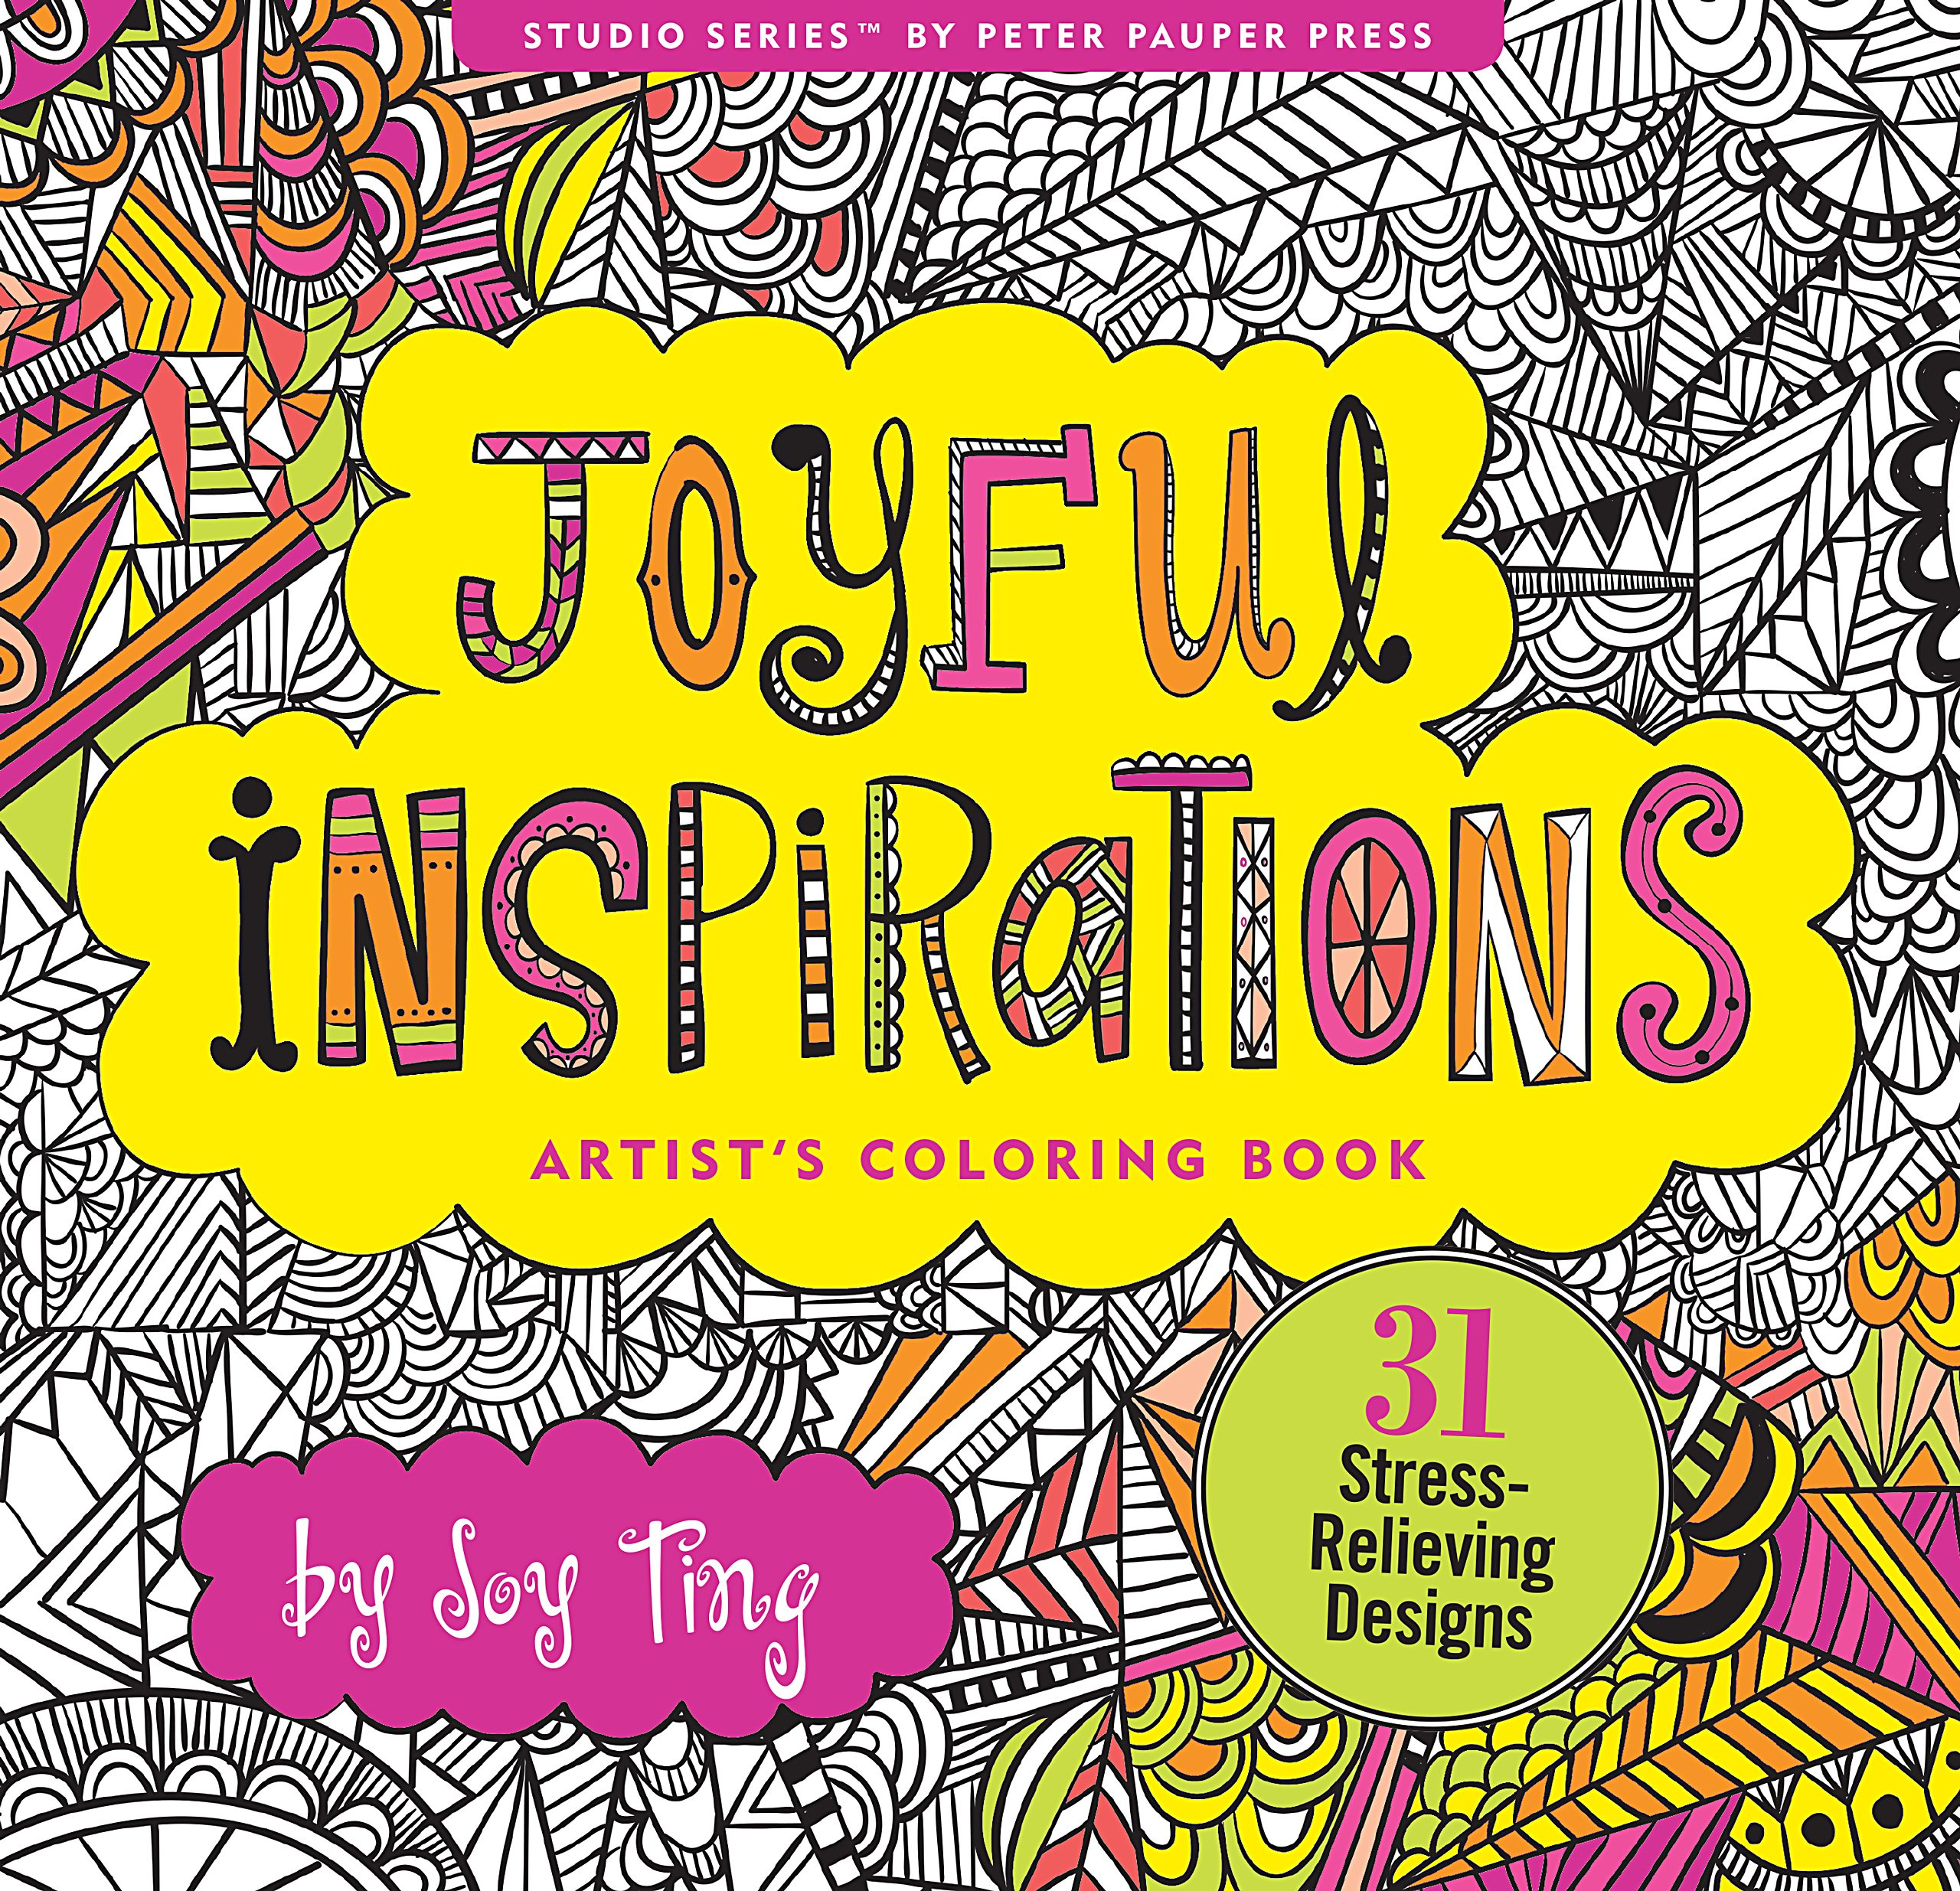 Download Joyful Inspiration Adult Coloring Book (31 stress-relieving designs) (Artists' Coloring Books) ebook